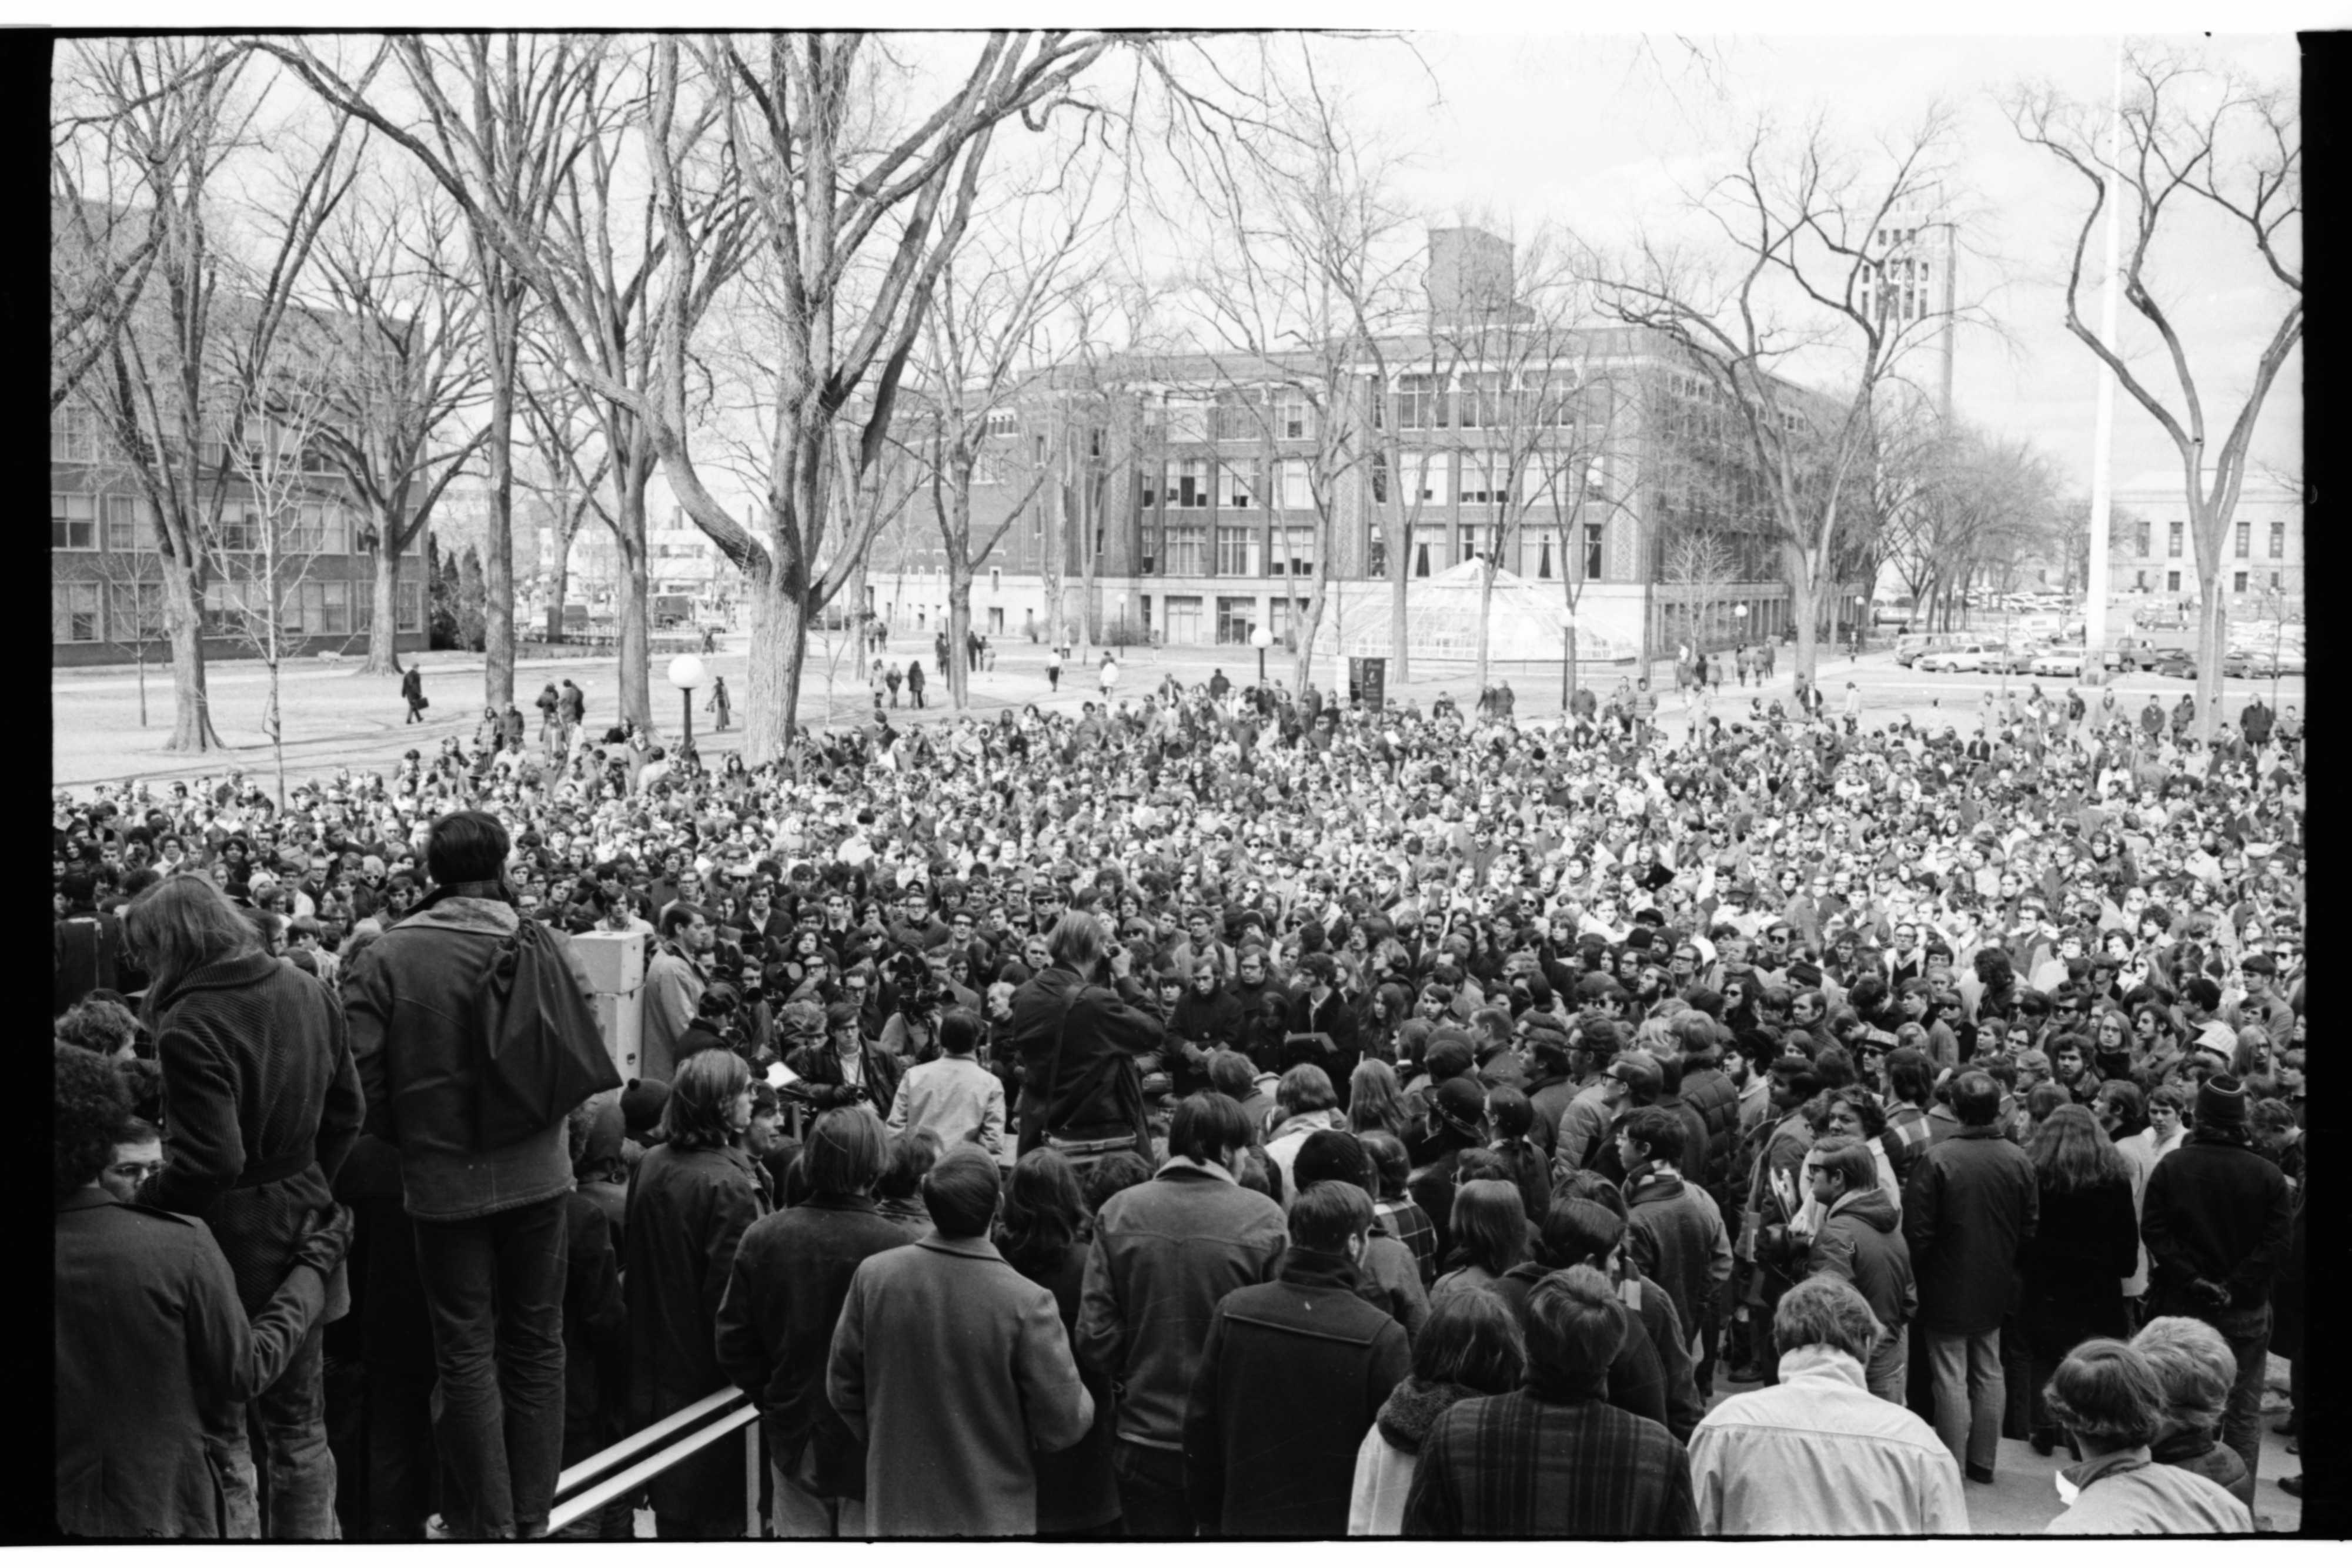 ENACT Eco-Rally on University of Michigan Diag, March 1970 image